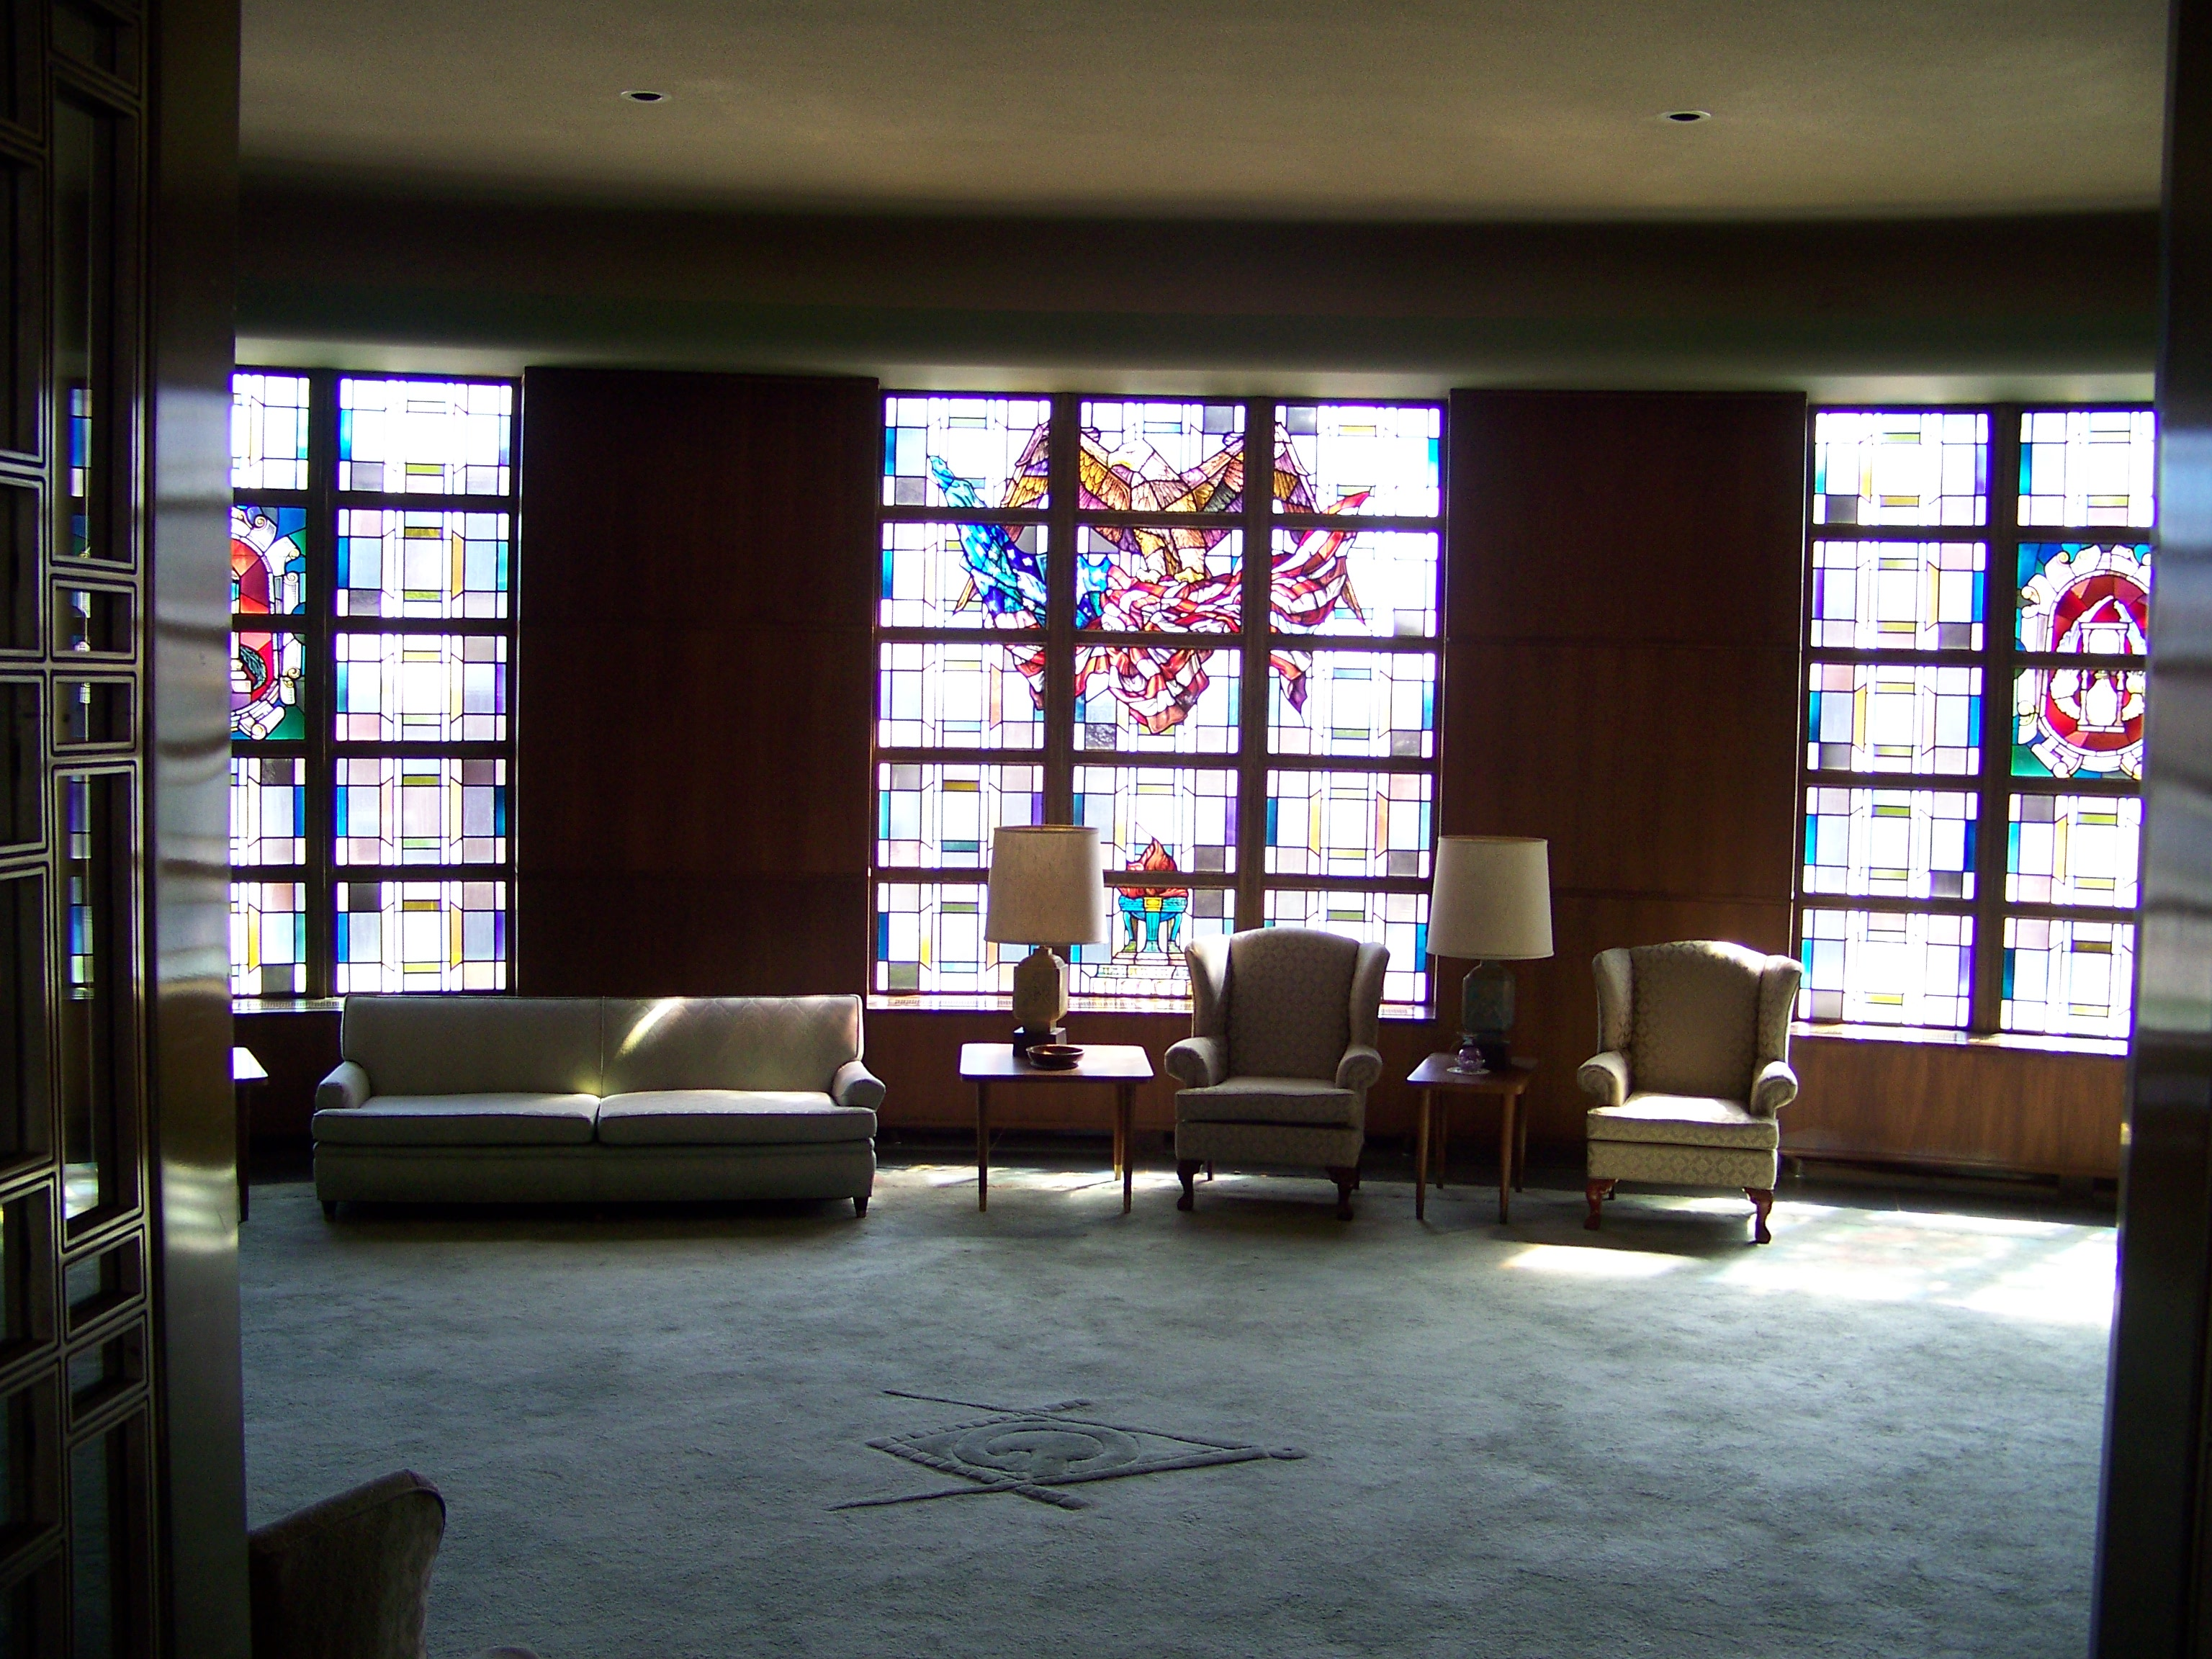 Looking into the War Memorial Room from it's entrance